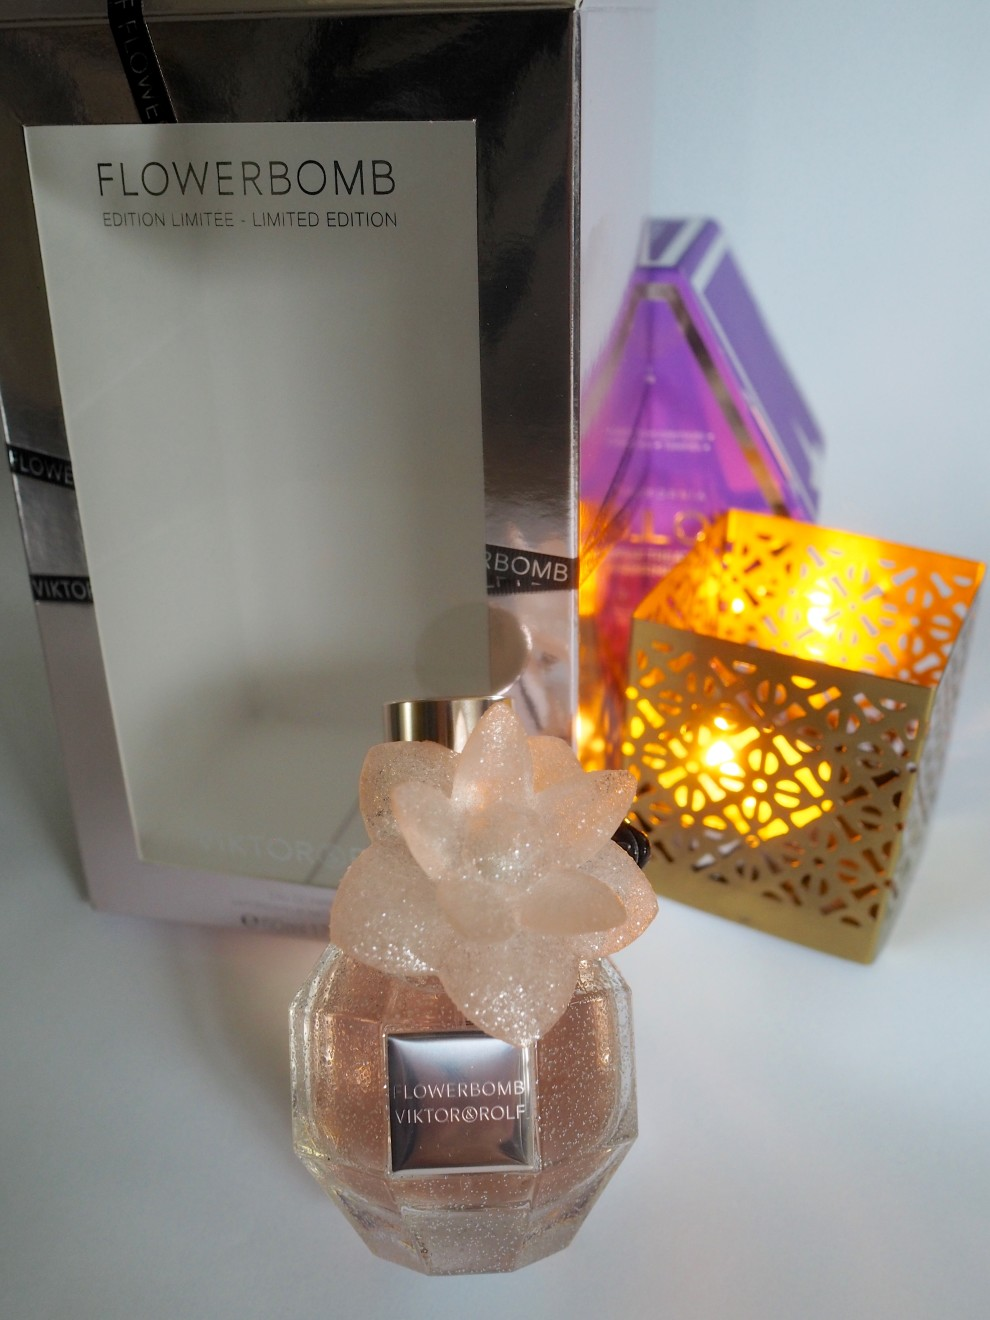 FLOWER BOMB LIMITED CHRISTMAS EDITION